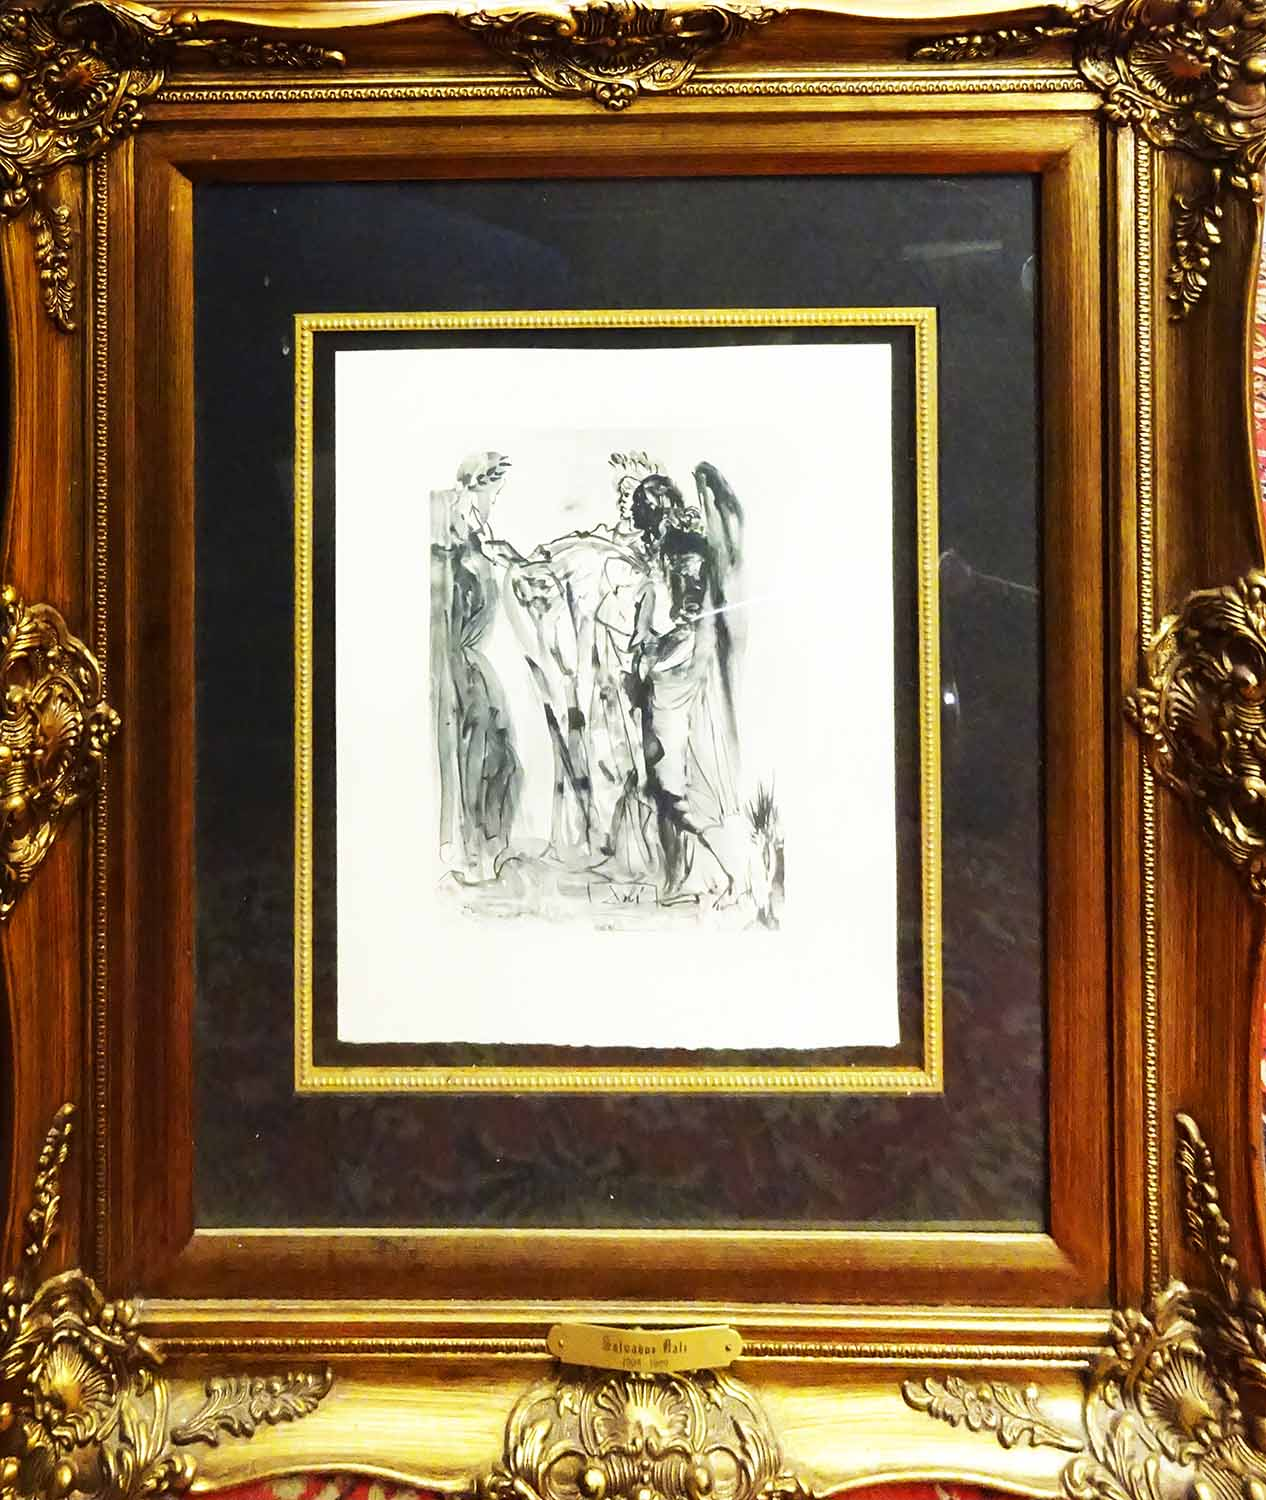 Lot 14 - After SALVADOR DALI 'The Haughty-Purgatory', engraving, with signature in the plate,